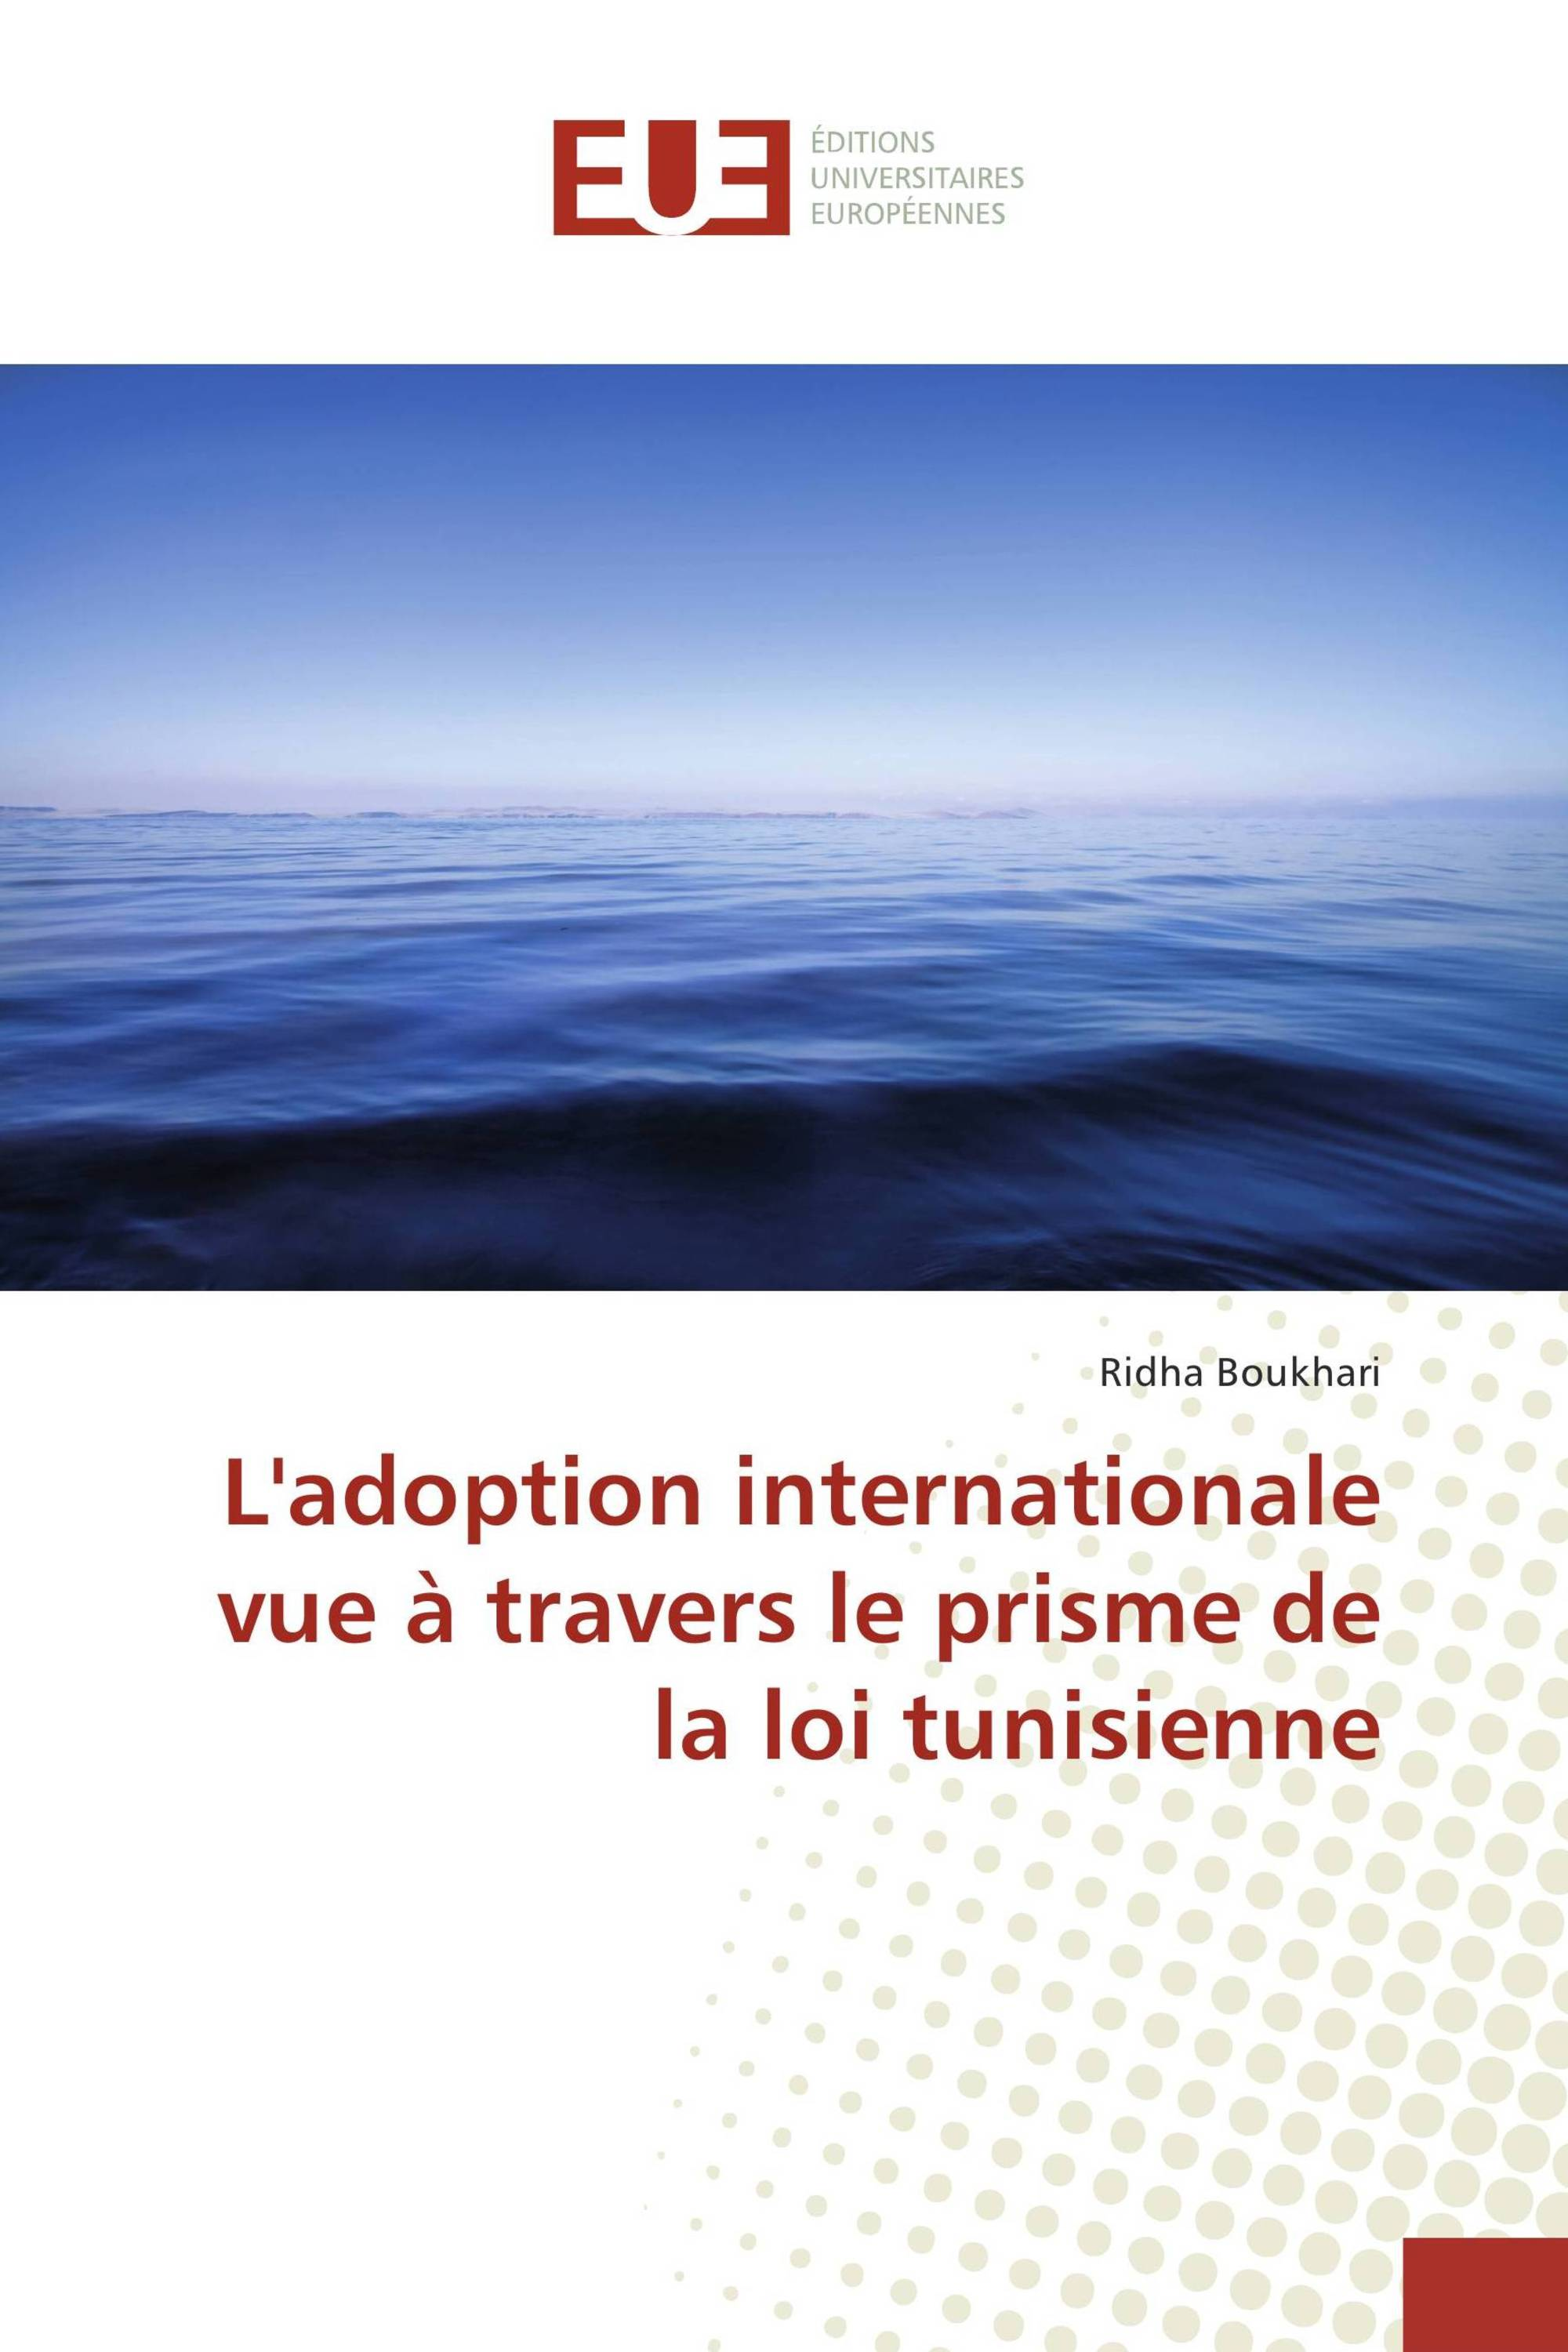 L'adoption internationale vue à travers le prisme de la loi tunisienne